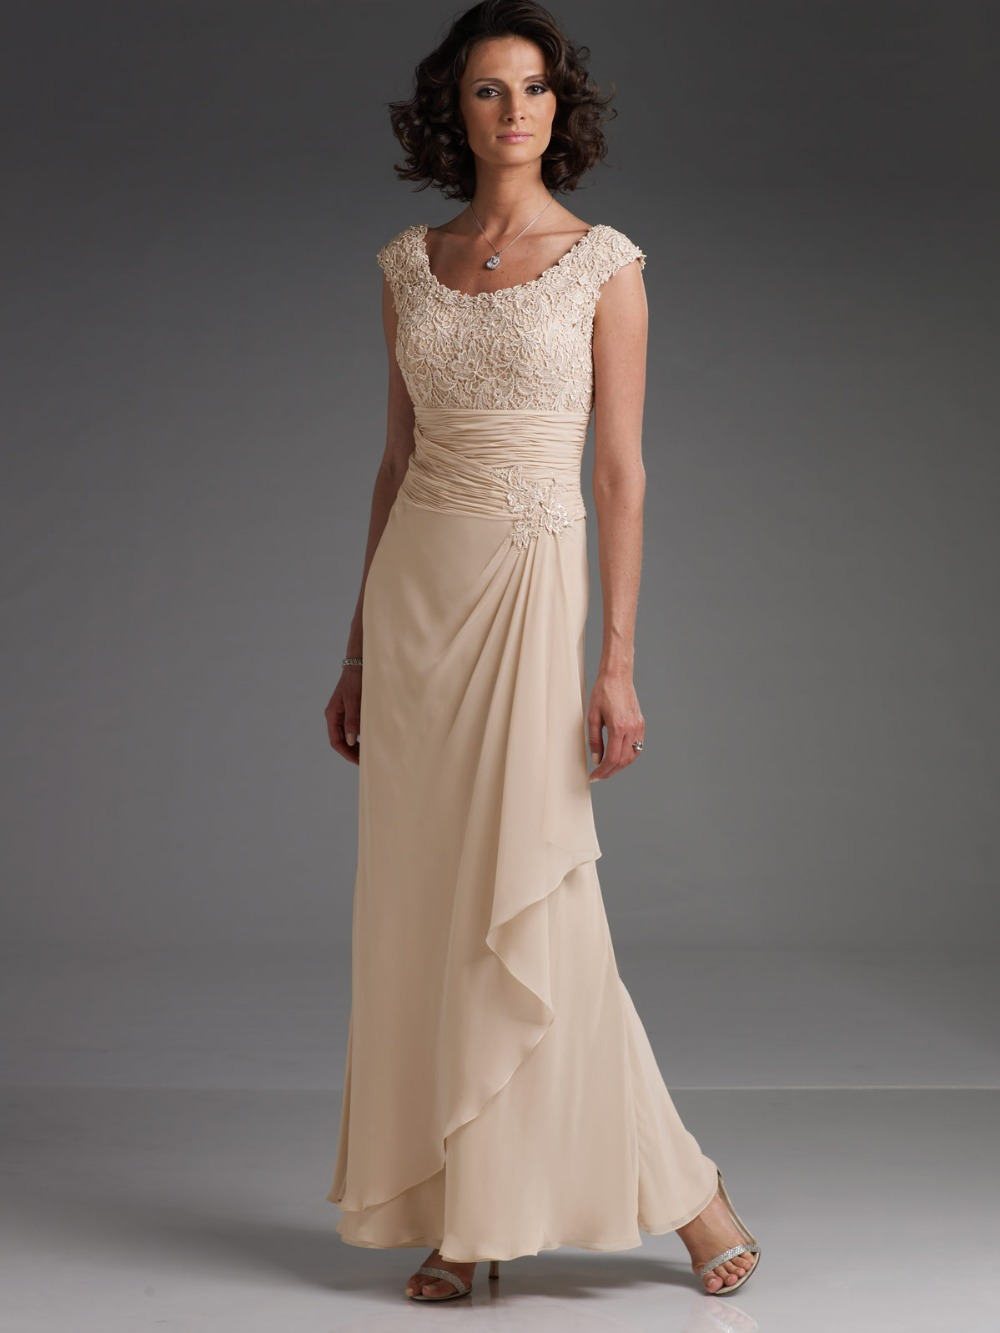 Collection Mother Of The Bride Dress Canada Pictures - Kcraft